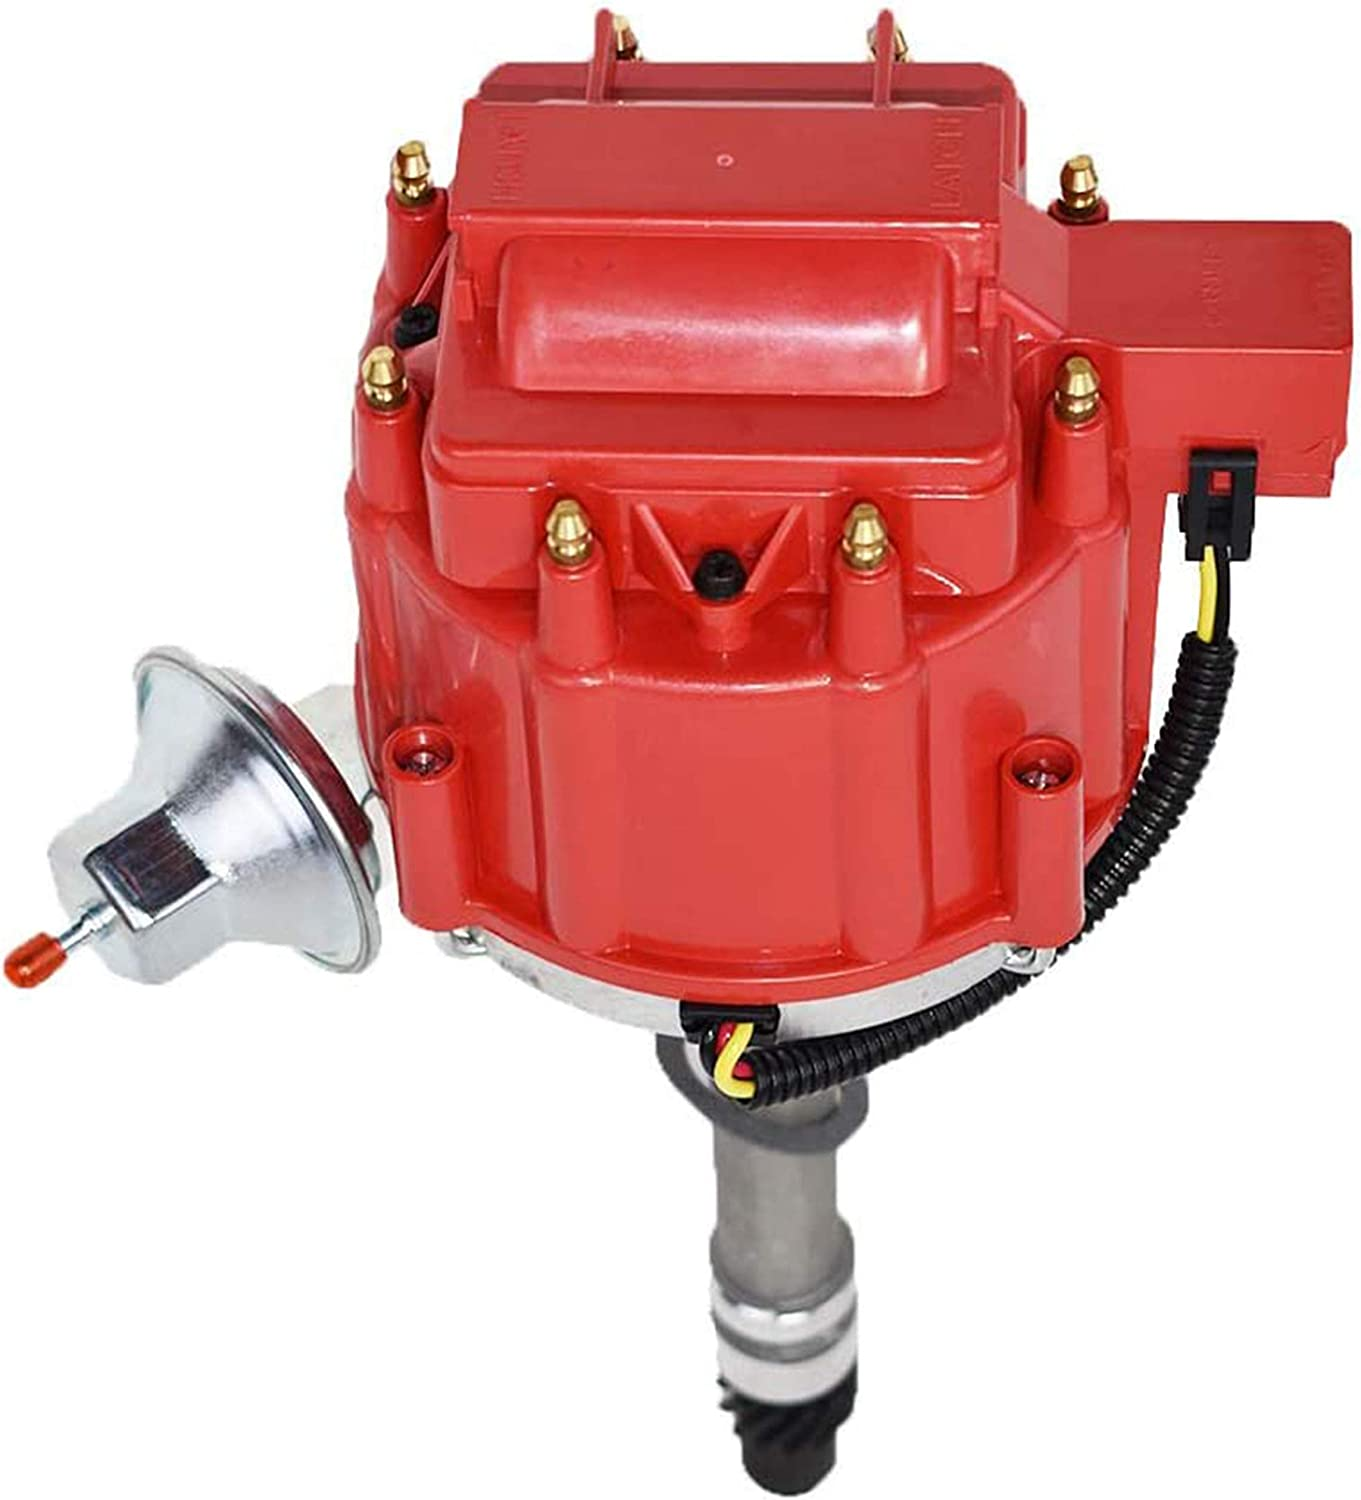 A-Team Performance Complete HEI Distributor 65K Coil Compatible with Chevrolet Chevy GM GMC Small Block Big Block Corvette Tach Drive 62-74 SBC BBC 7500 RPM 283 327 350 383 400 396 427 454 Red Cap